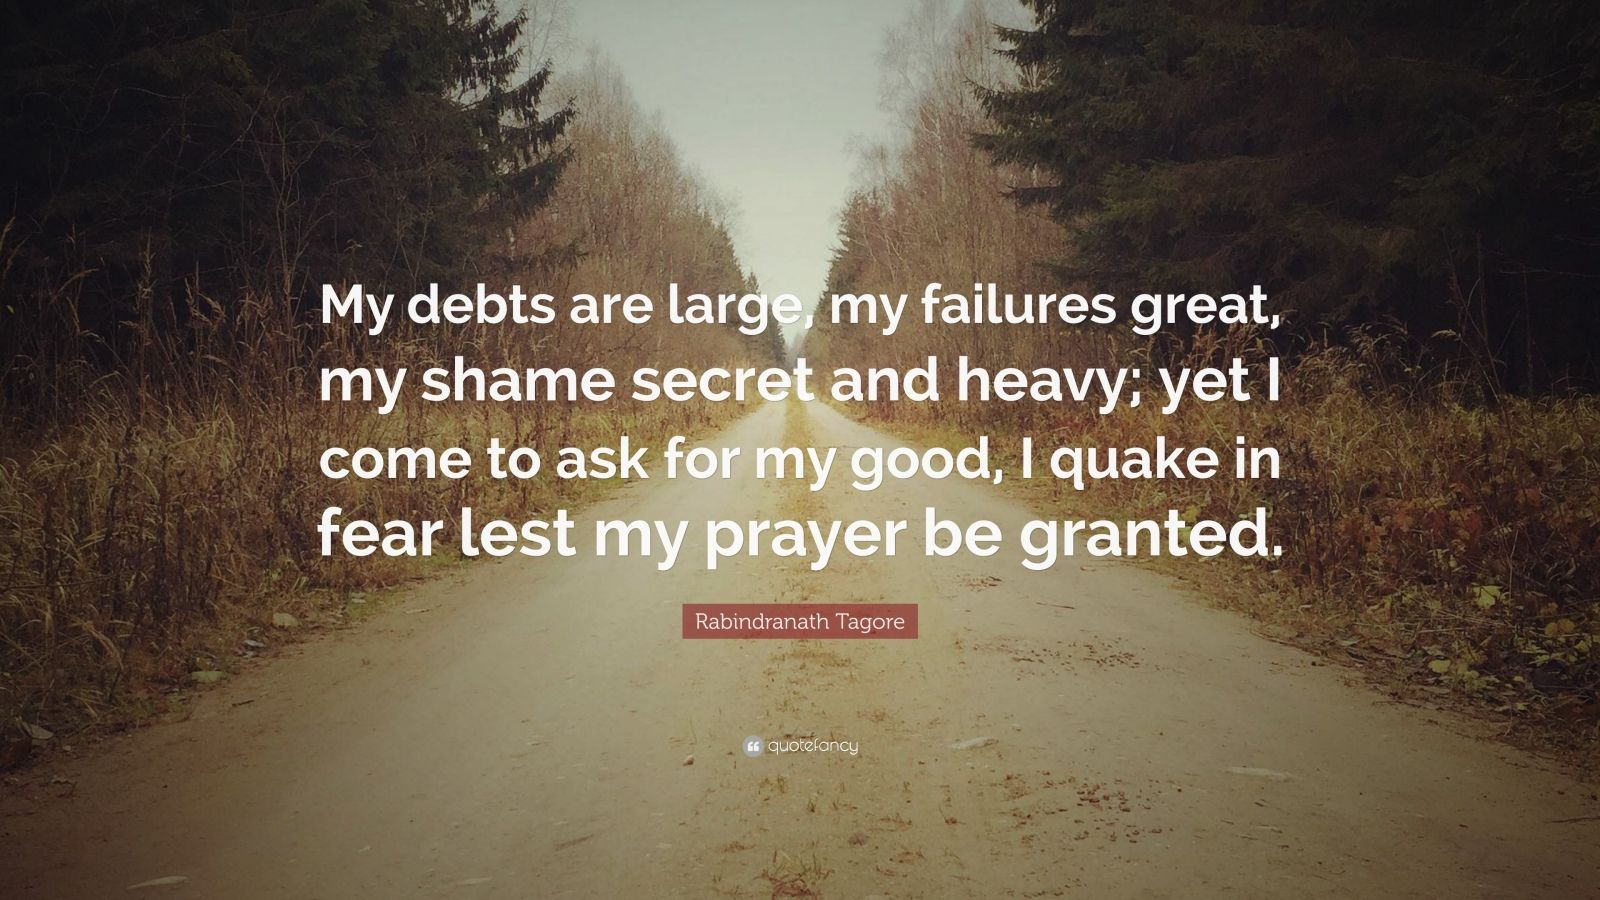 """Rabindranath Tagore Quote: """"My debts are large, my failures great, my shame secret and heavy; yet I come to ask for my good, I quake in fear lest my prayer be granted."""""""